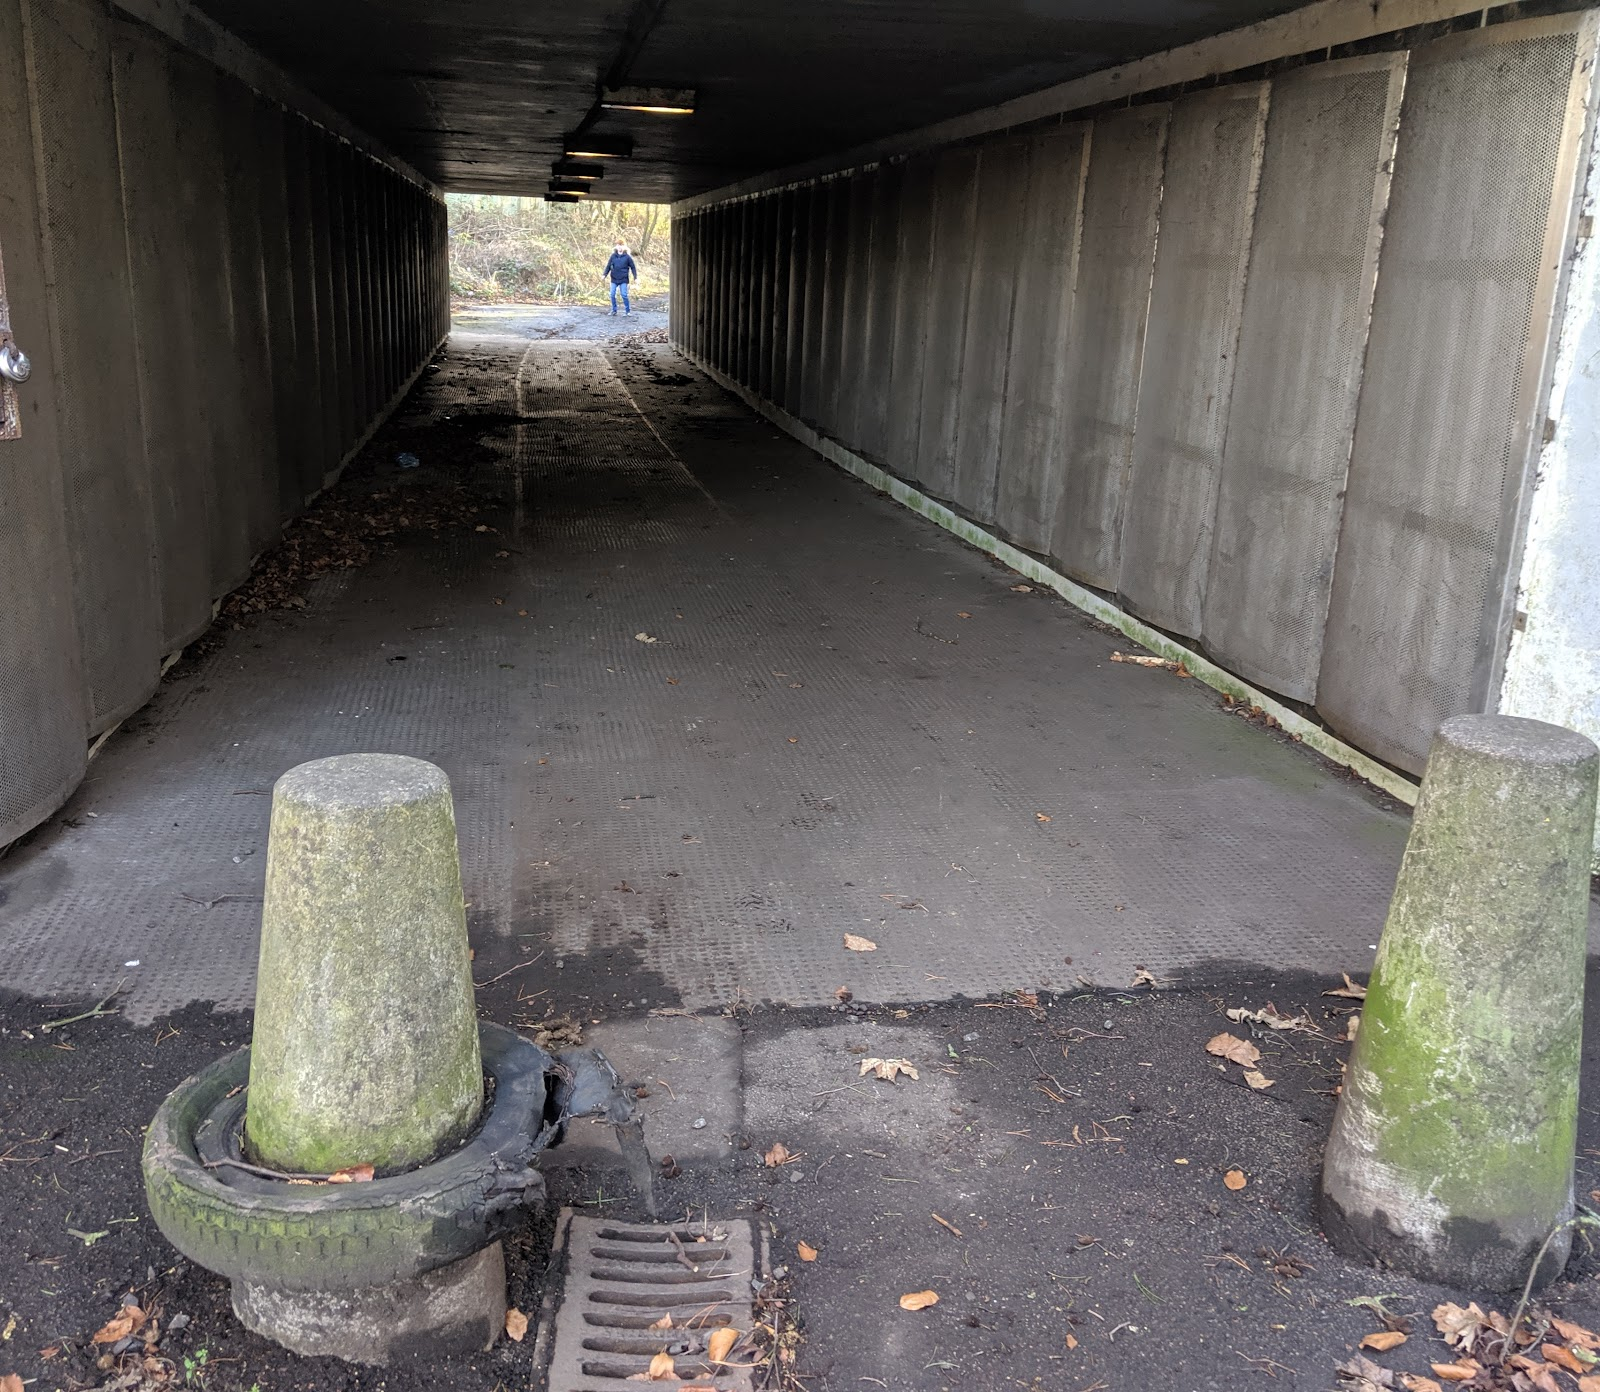 How to find the Giant Spoon in Cramlington, Northumberland - walk through the underpass